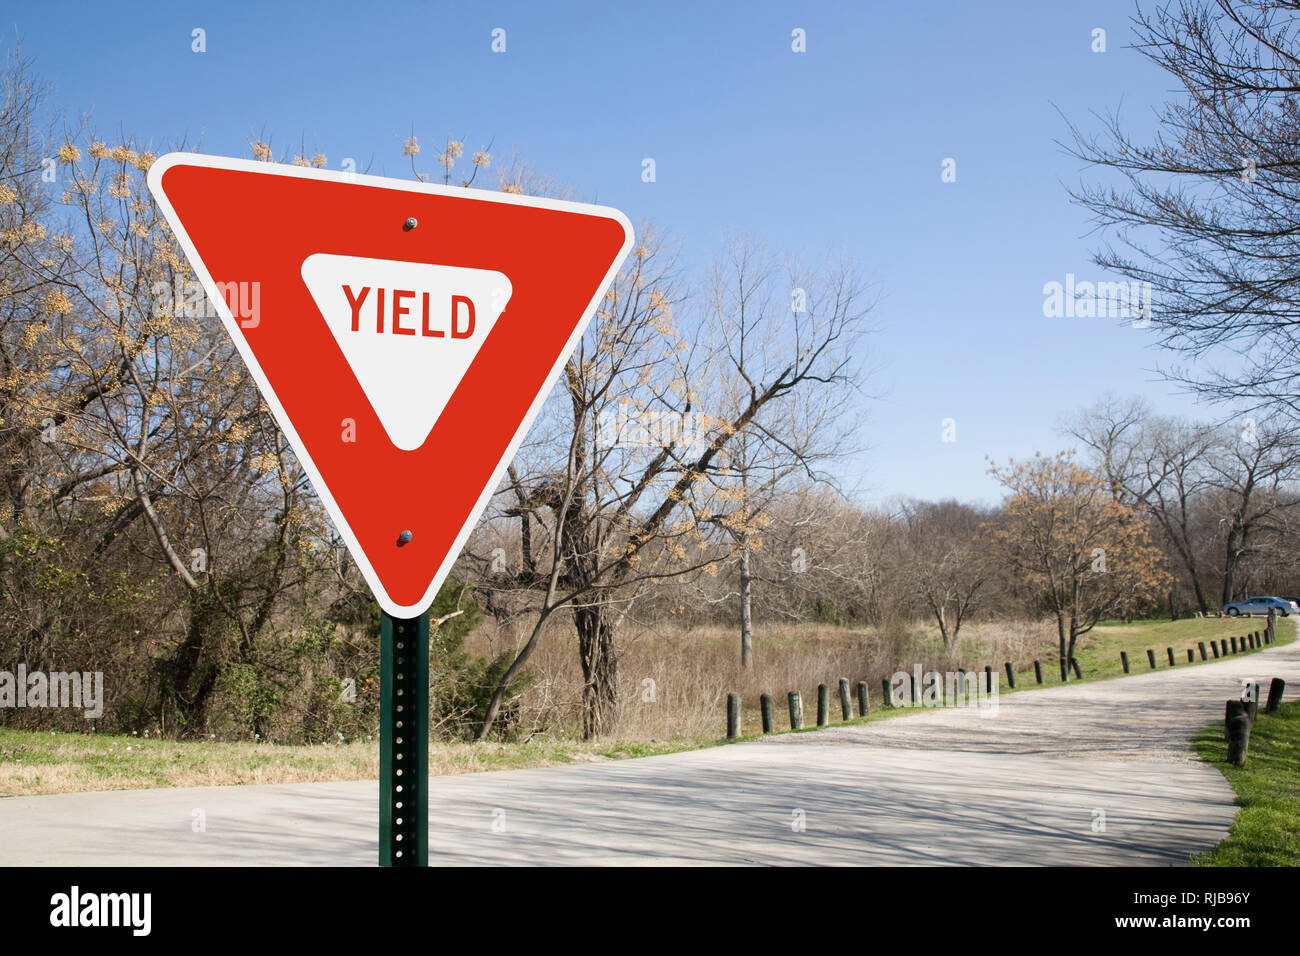 Yield Sign In Sunlight - Stock Image